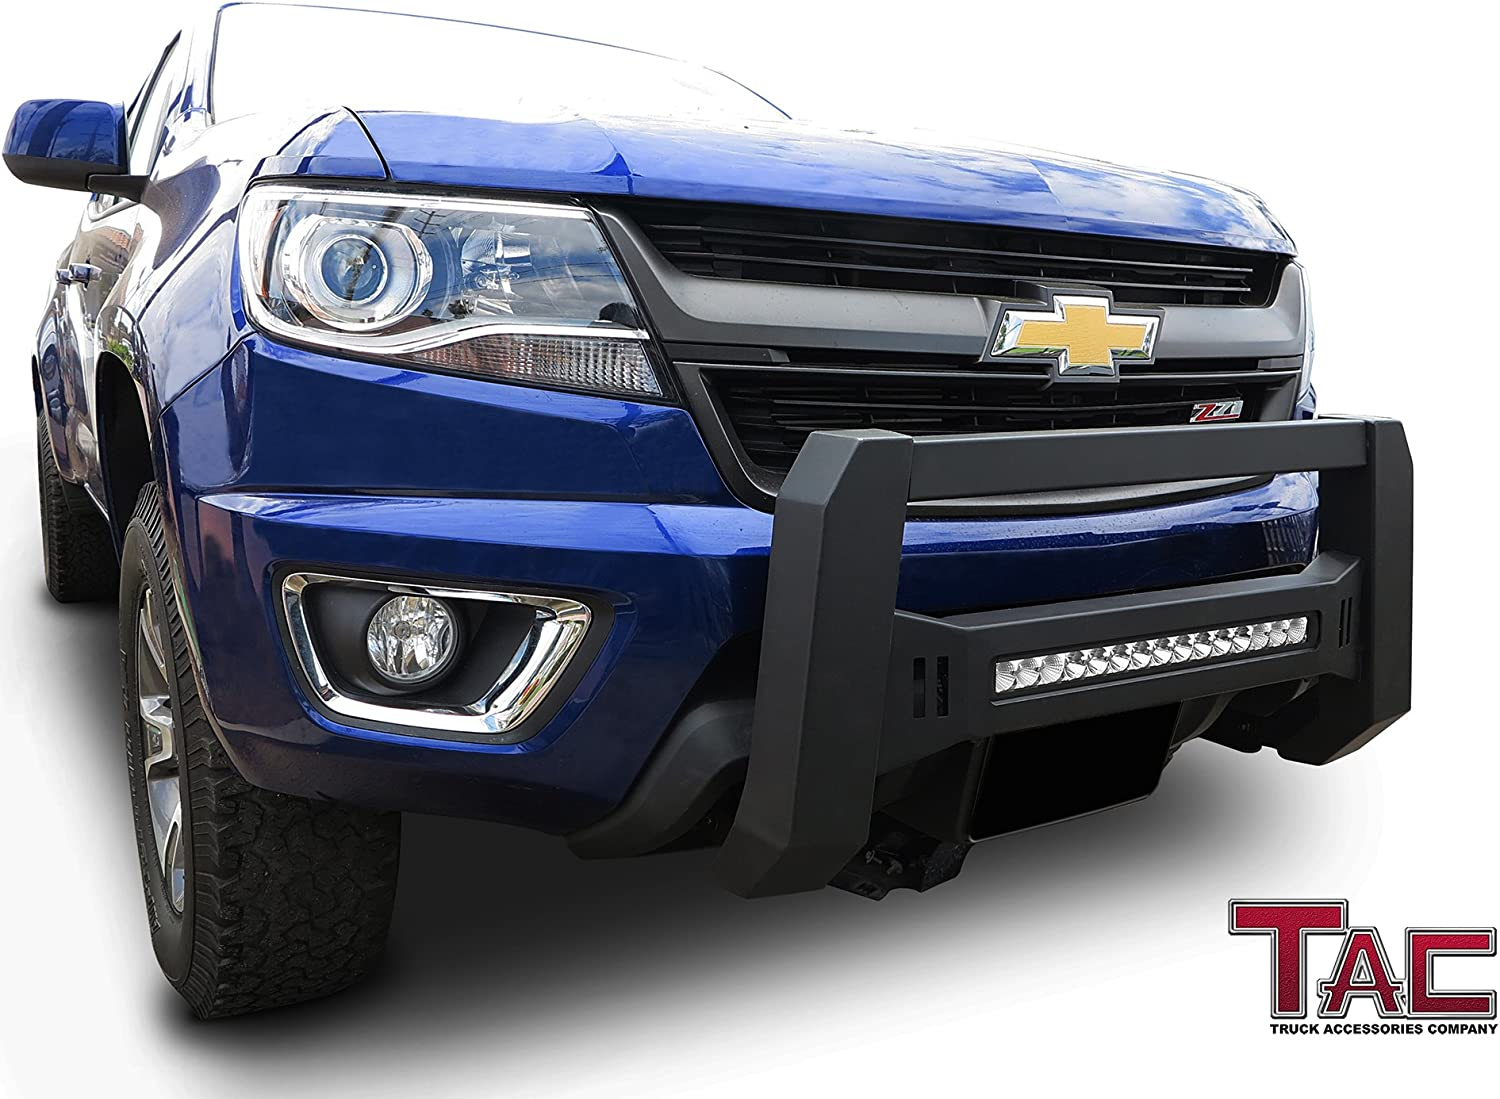 T YONG TONG Front Bull Bar Bumper for 2015-2016 Chevy Colorado Stainless Steel Bull Bar Polished Heavyduty 3 Tube Front Bumper Sturdy Grille Brush Push Guard fits 15-16 Chevy Colorado Easy-Install